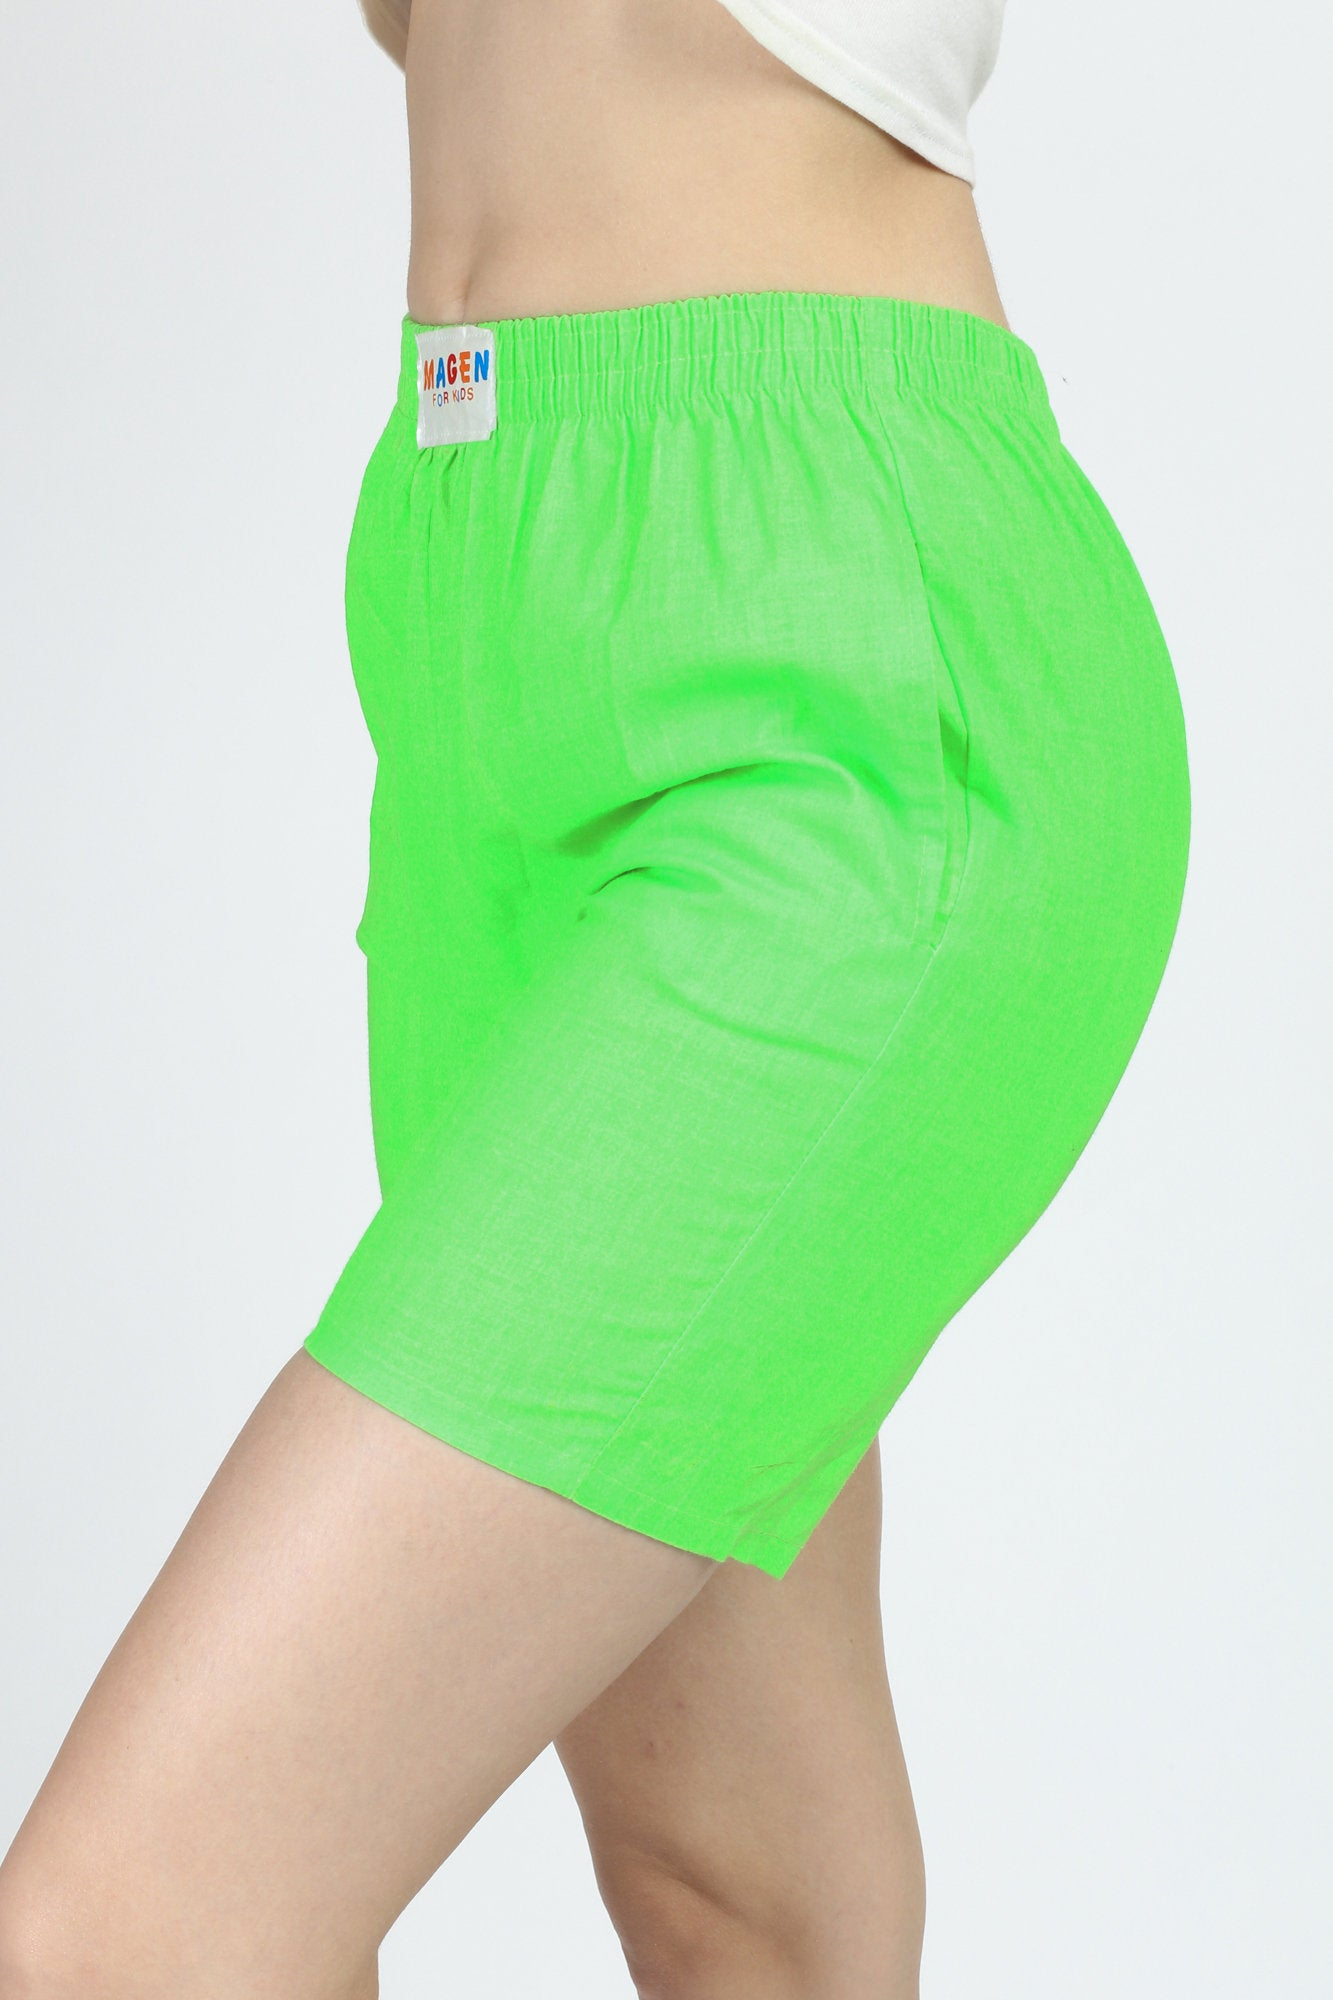 80s Neon Green High Rise Shorts - Extra Small